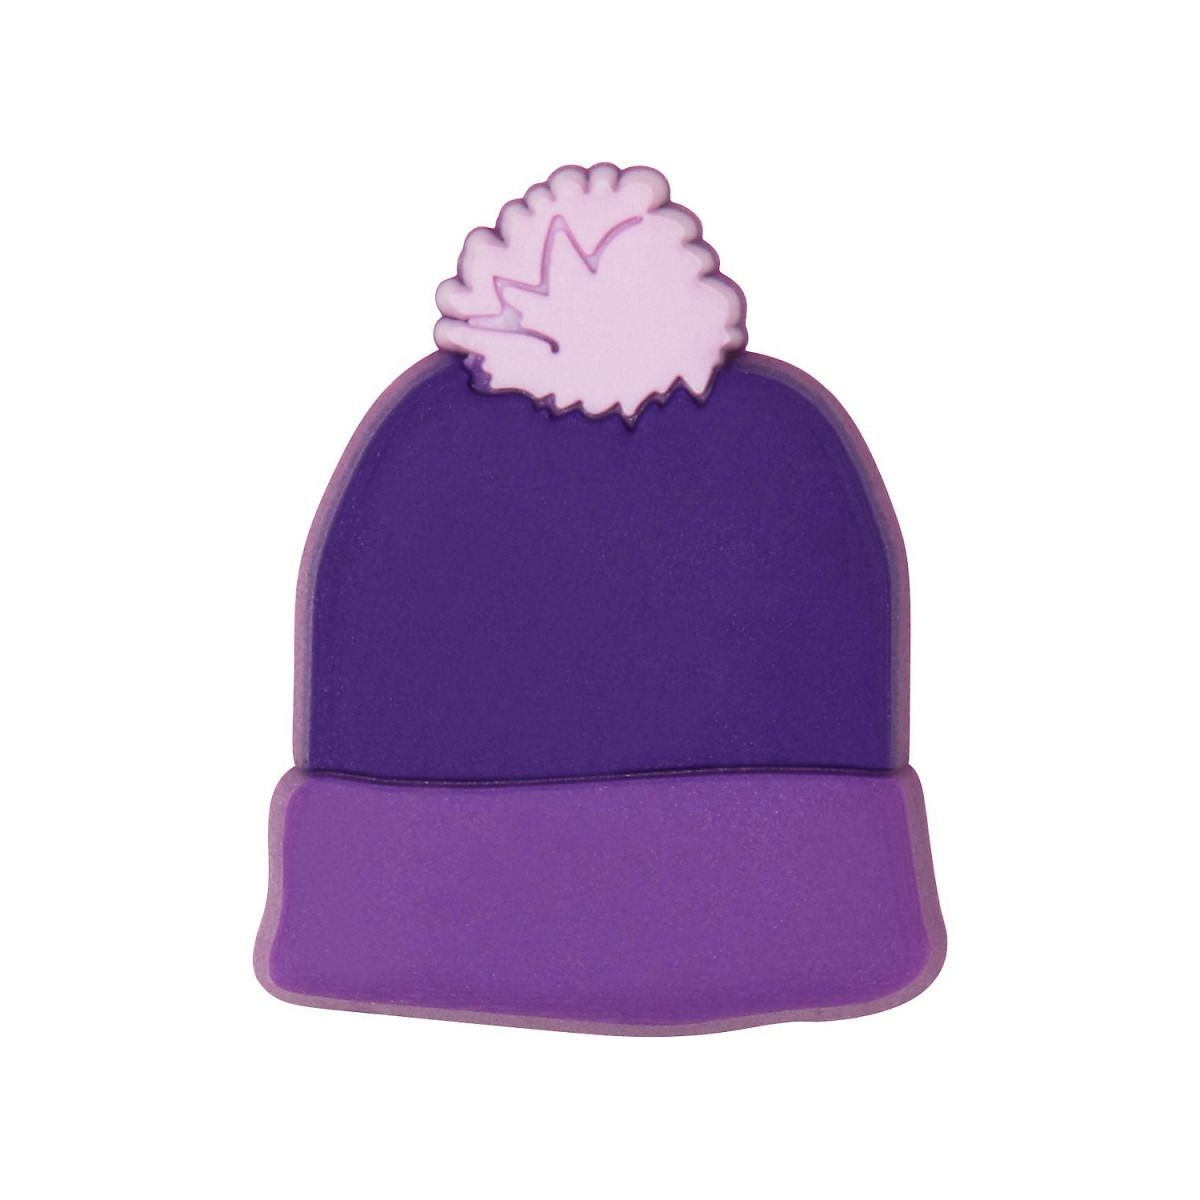 Copii Crocs Purple Beanie Mov -1